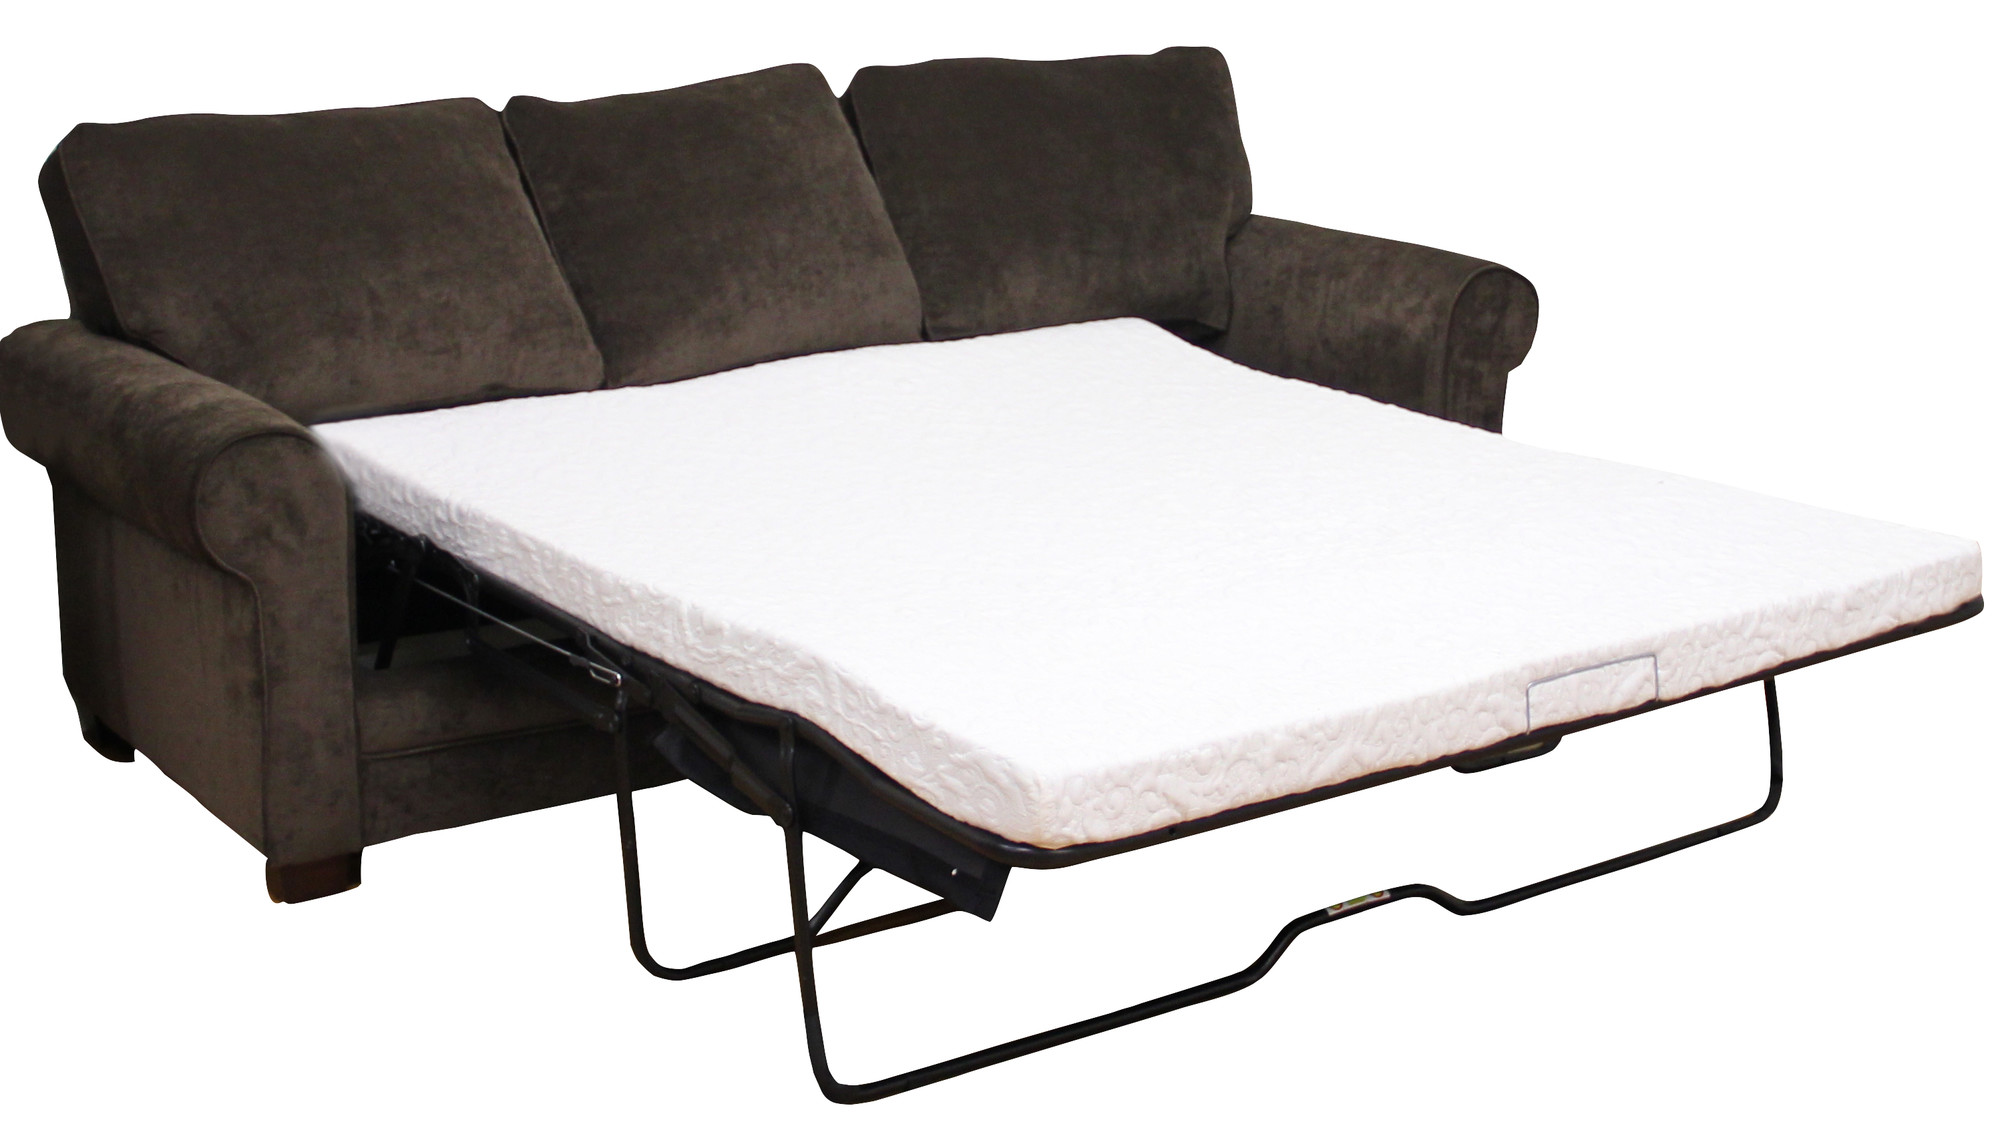 sofa bed mattress.jpg